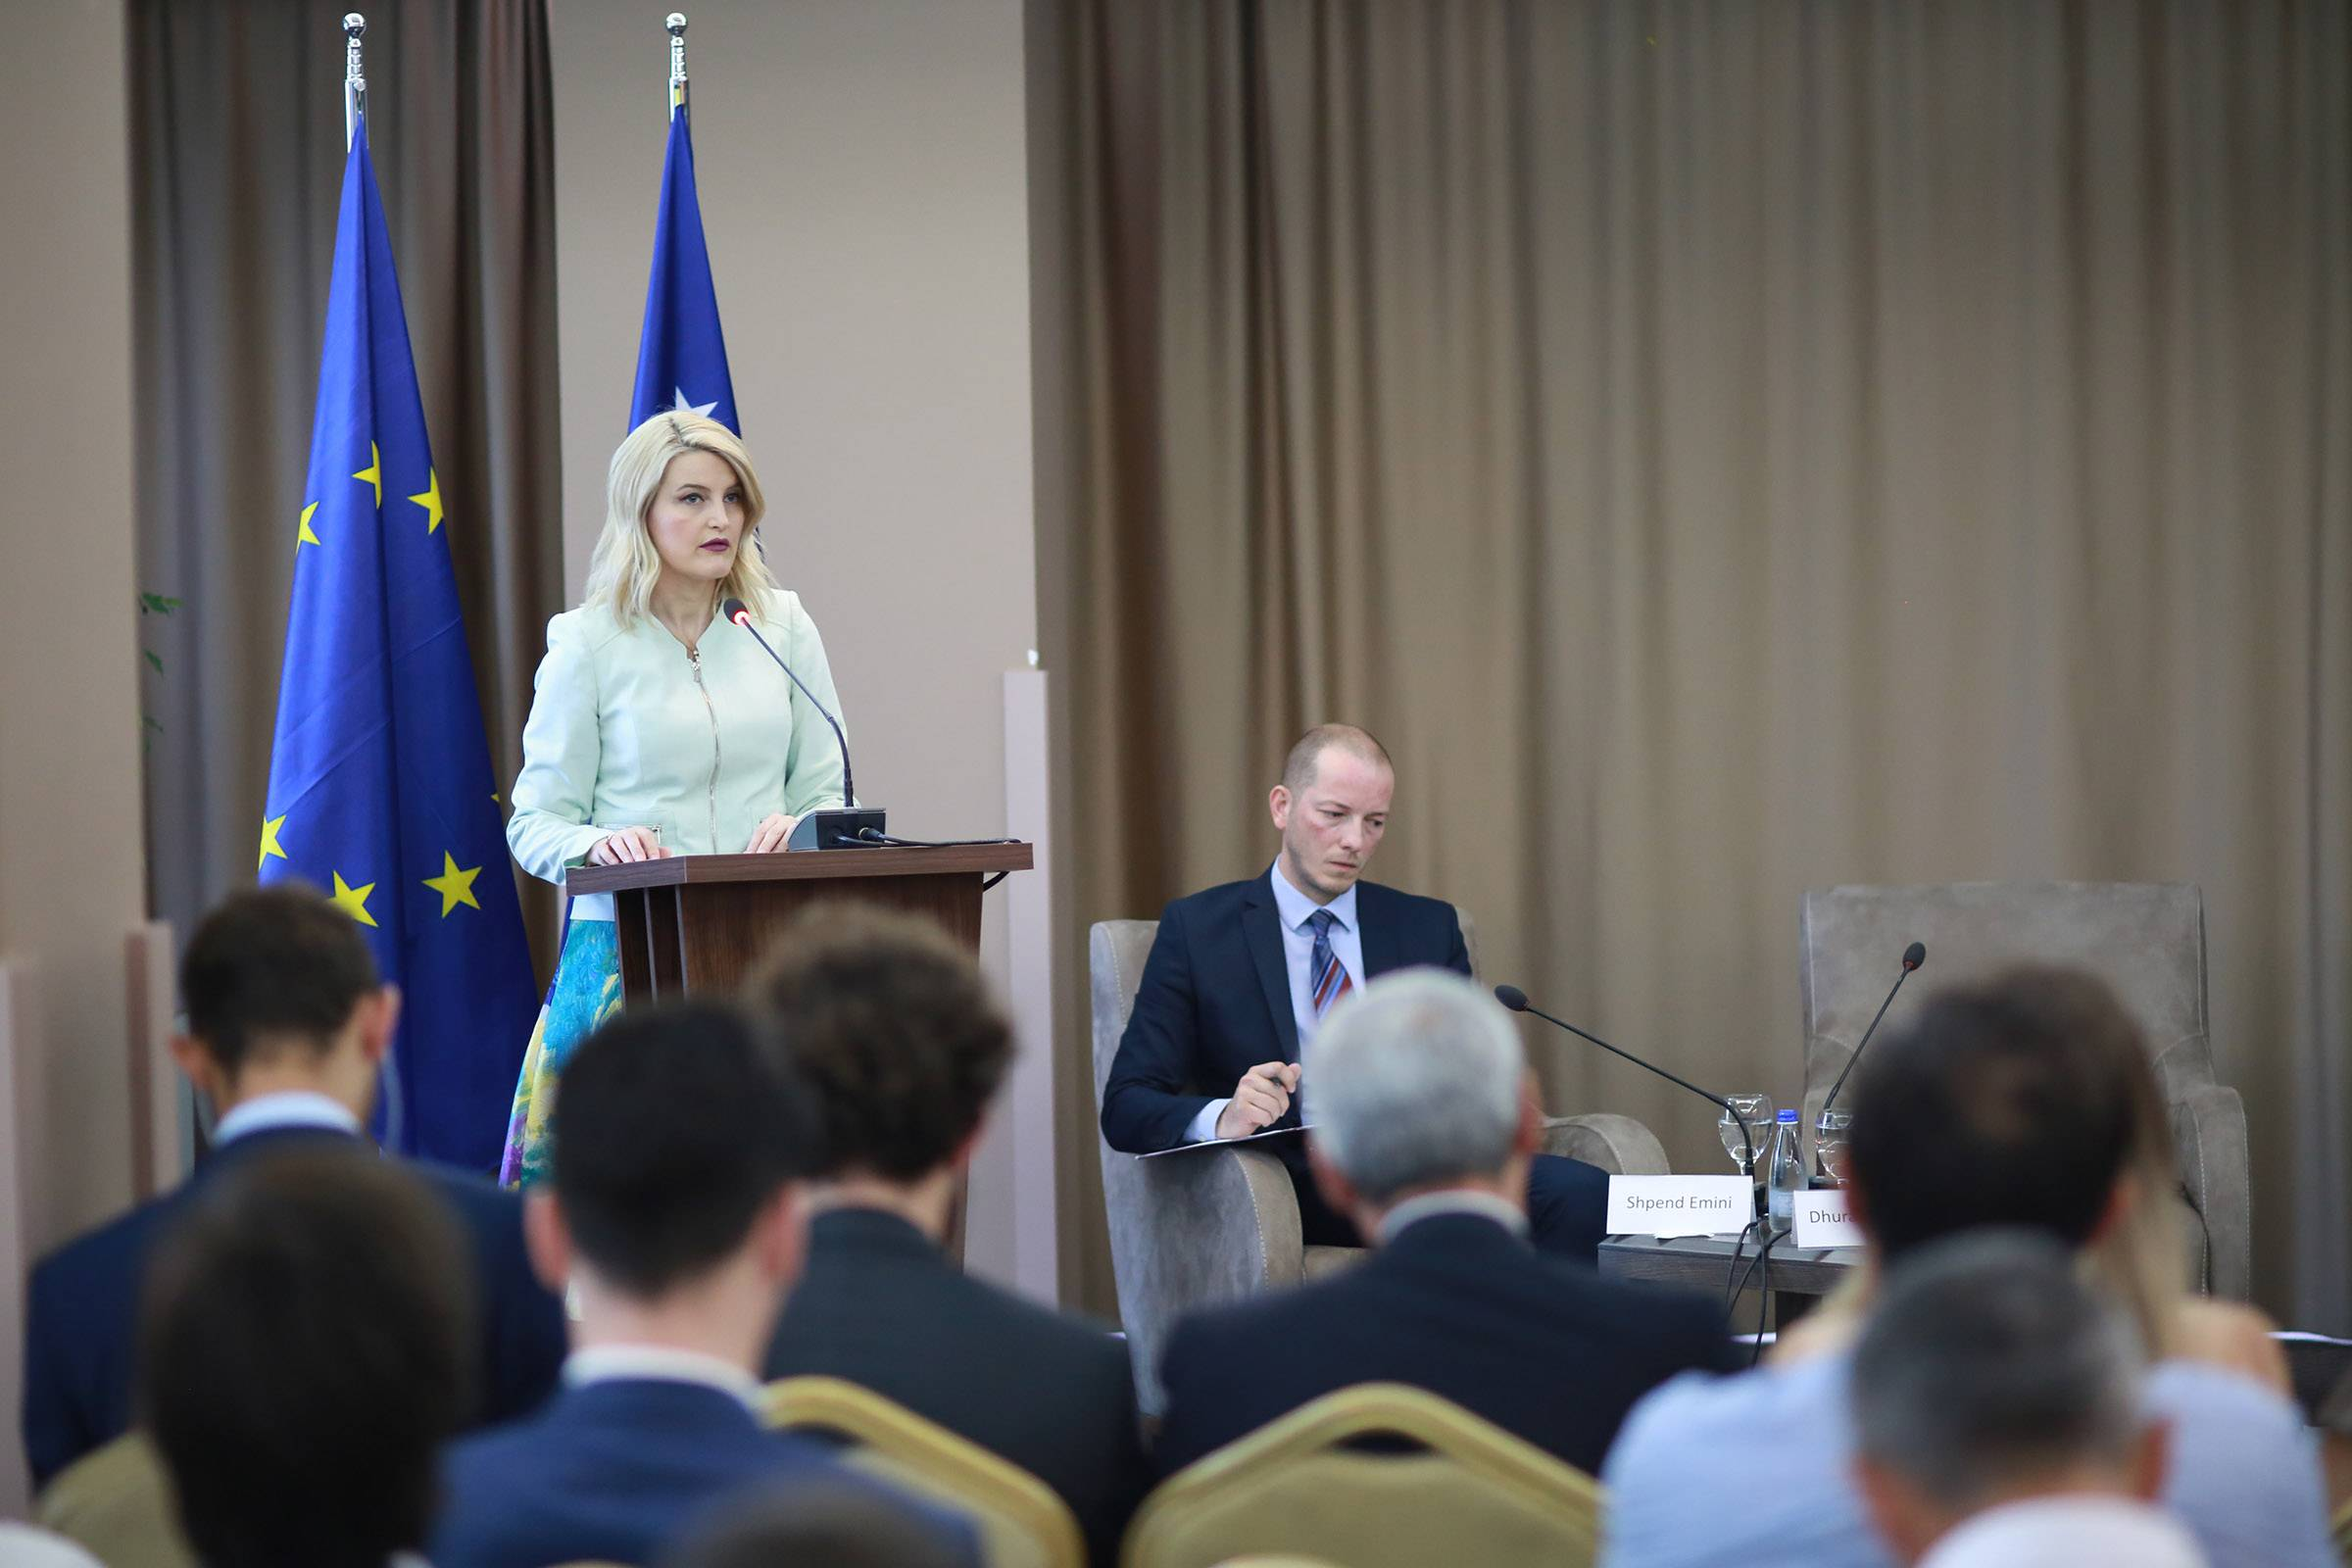 Minister Hoxha: Findings of the Report 2018 are being addressed with priority